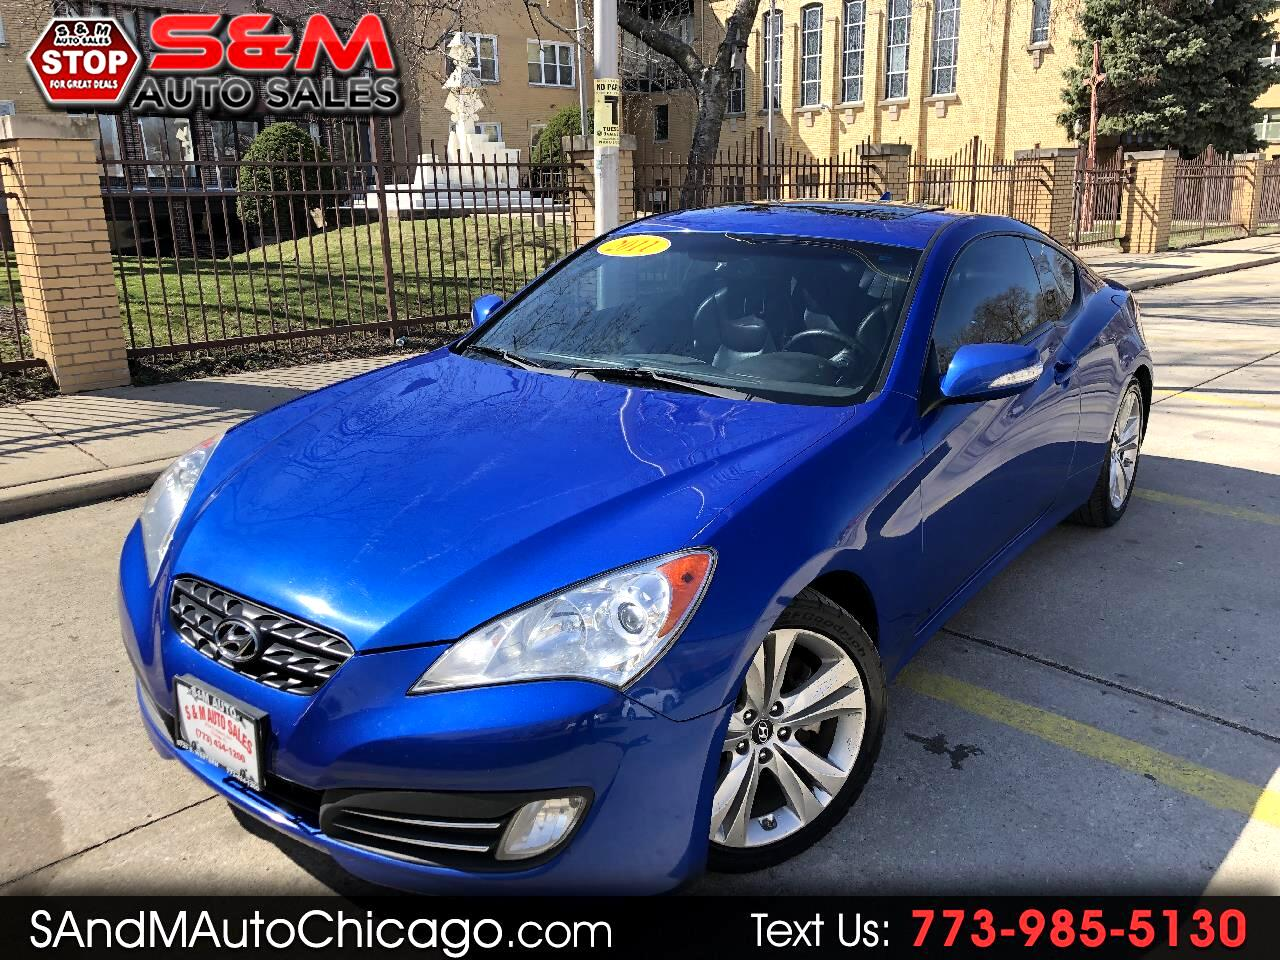 2011 Hyundai Genesis Coupe 2dr 3.8L Auto Grand Touring w/Blk Lth